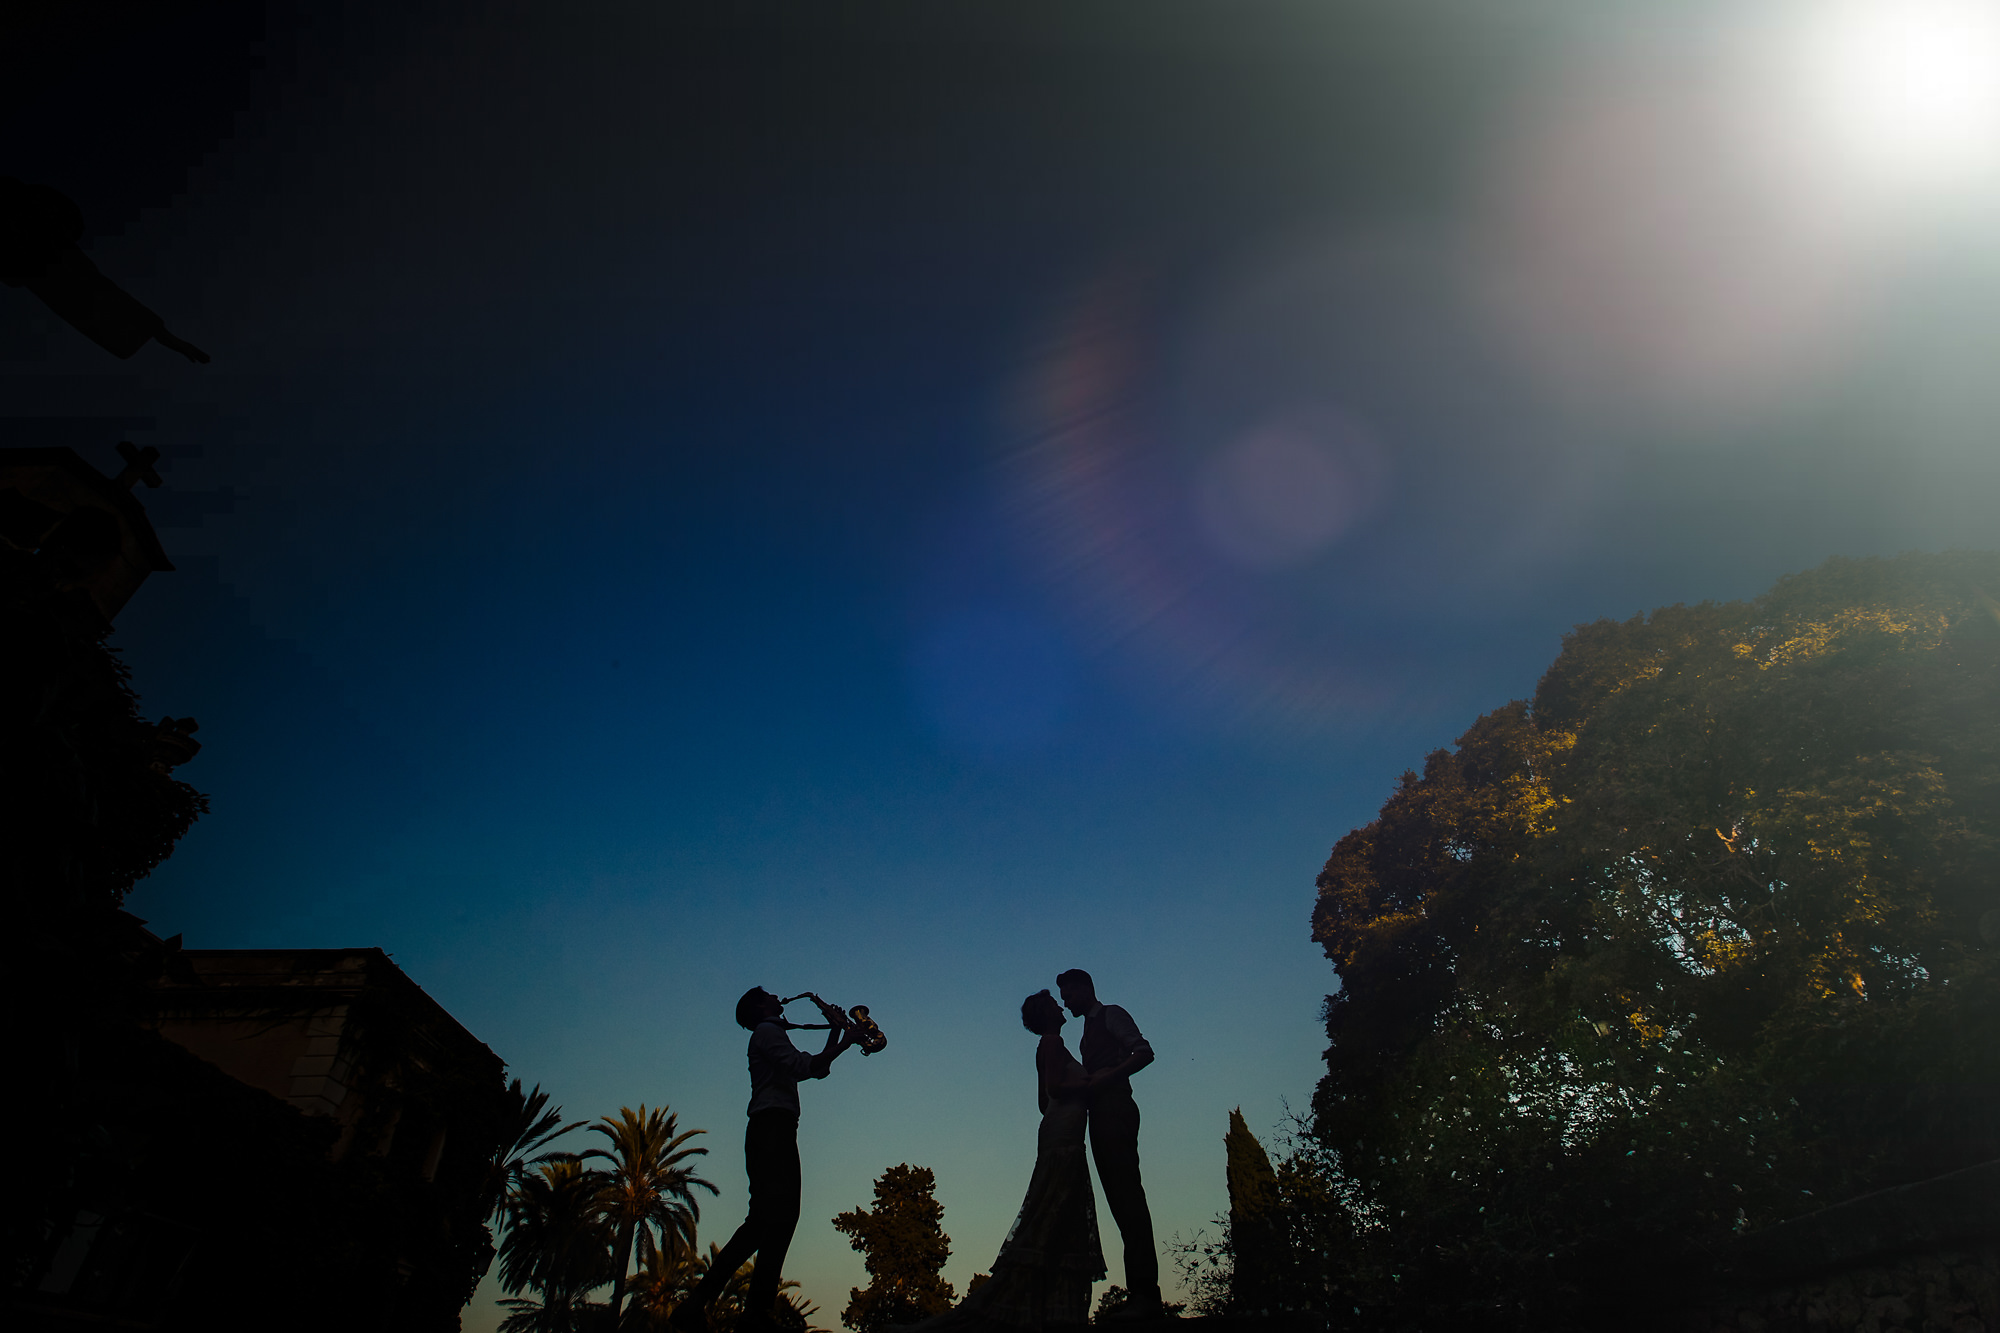 Silhouette of couple with saxaphone player by Eppel Photography Netherlands